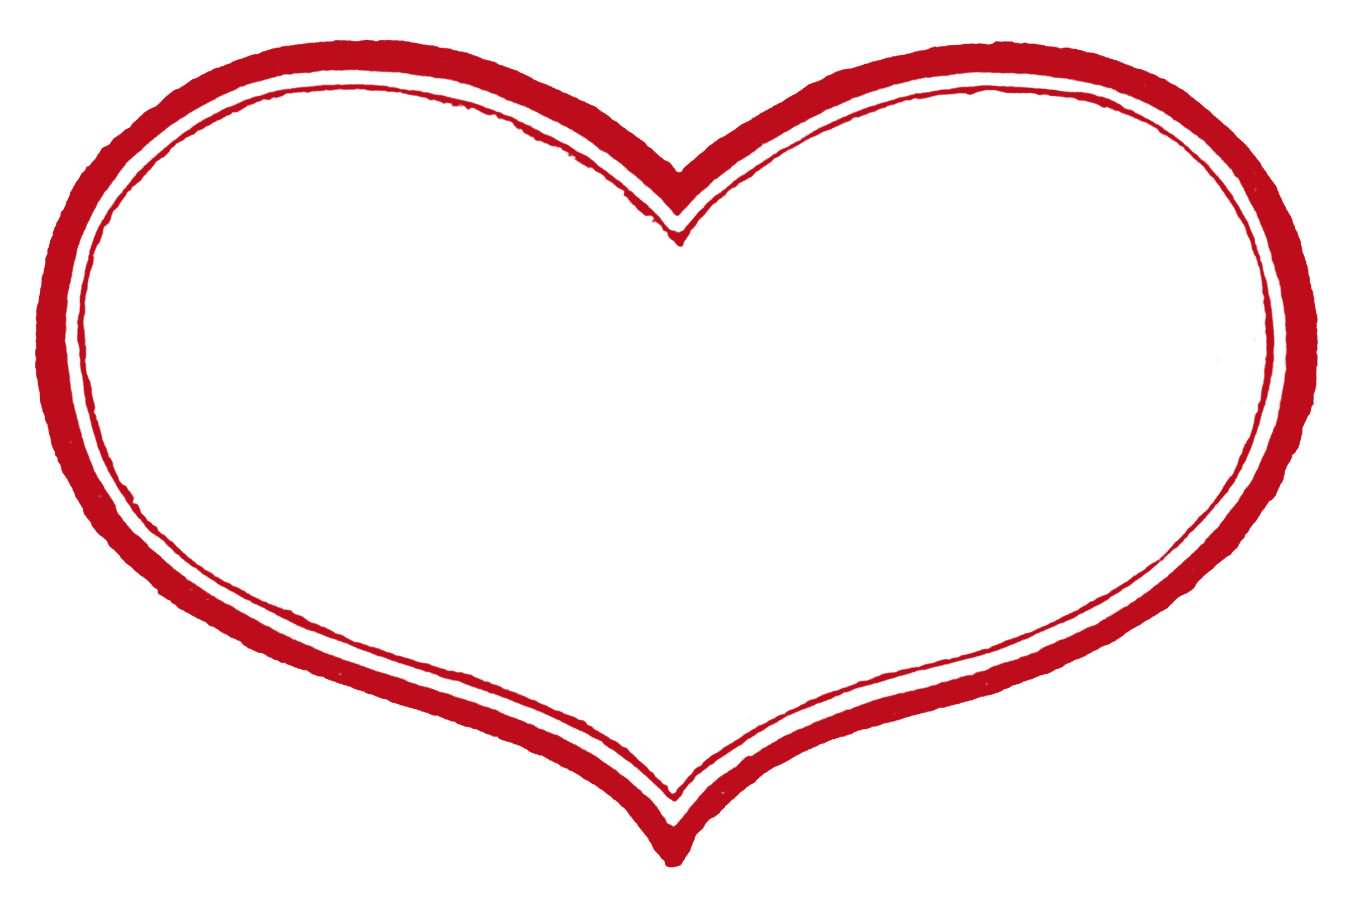 free clipart heart template - photo #49